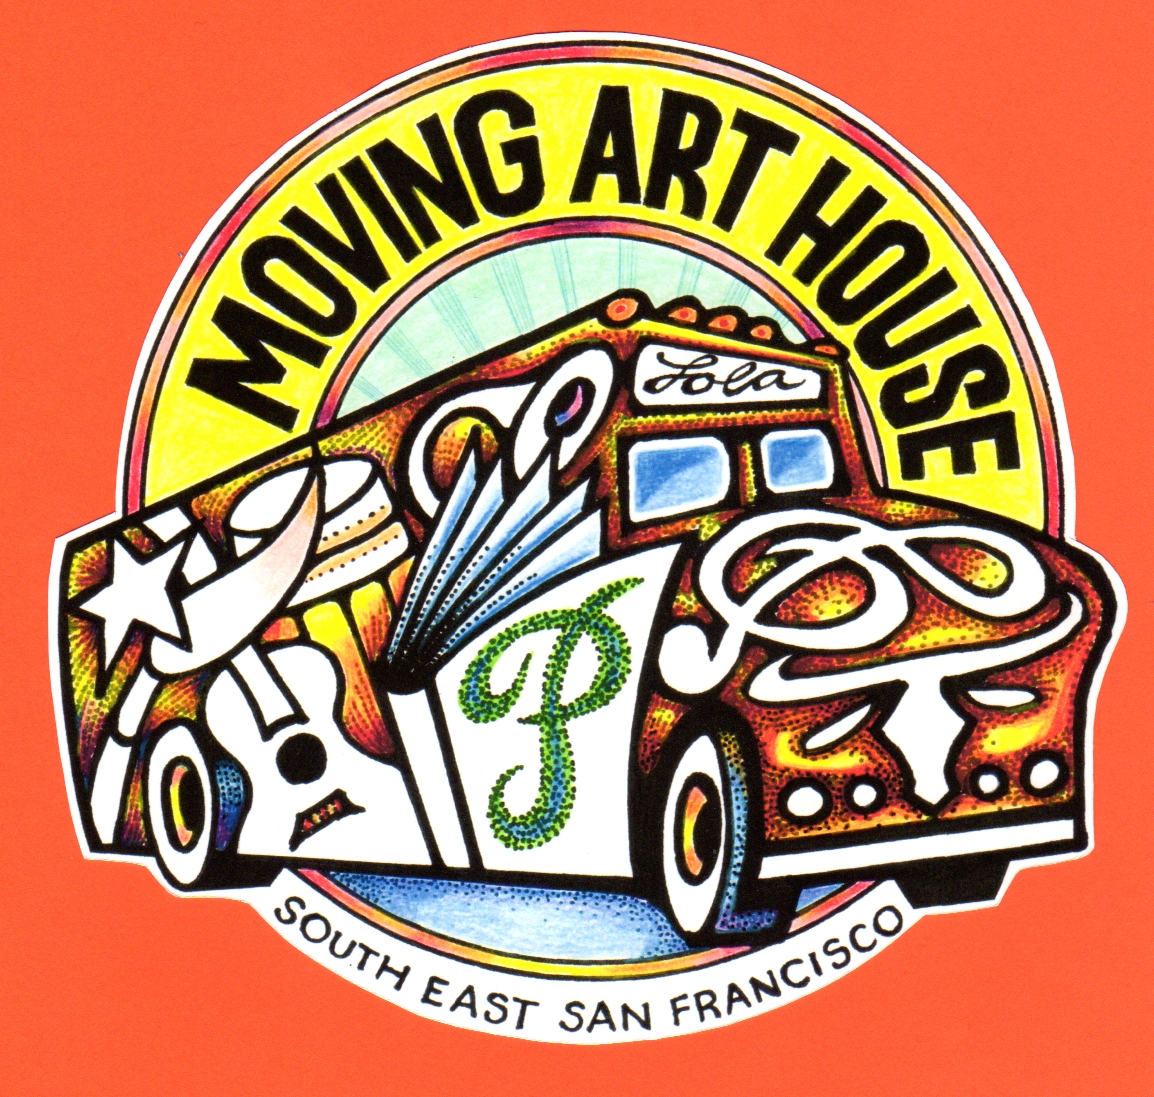 Moving Art House Logo orng bkcgrnd sm002 (2)